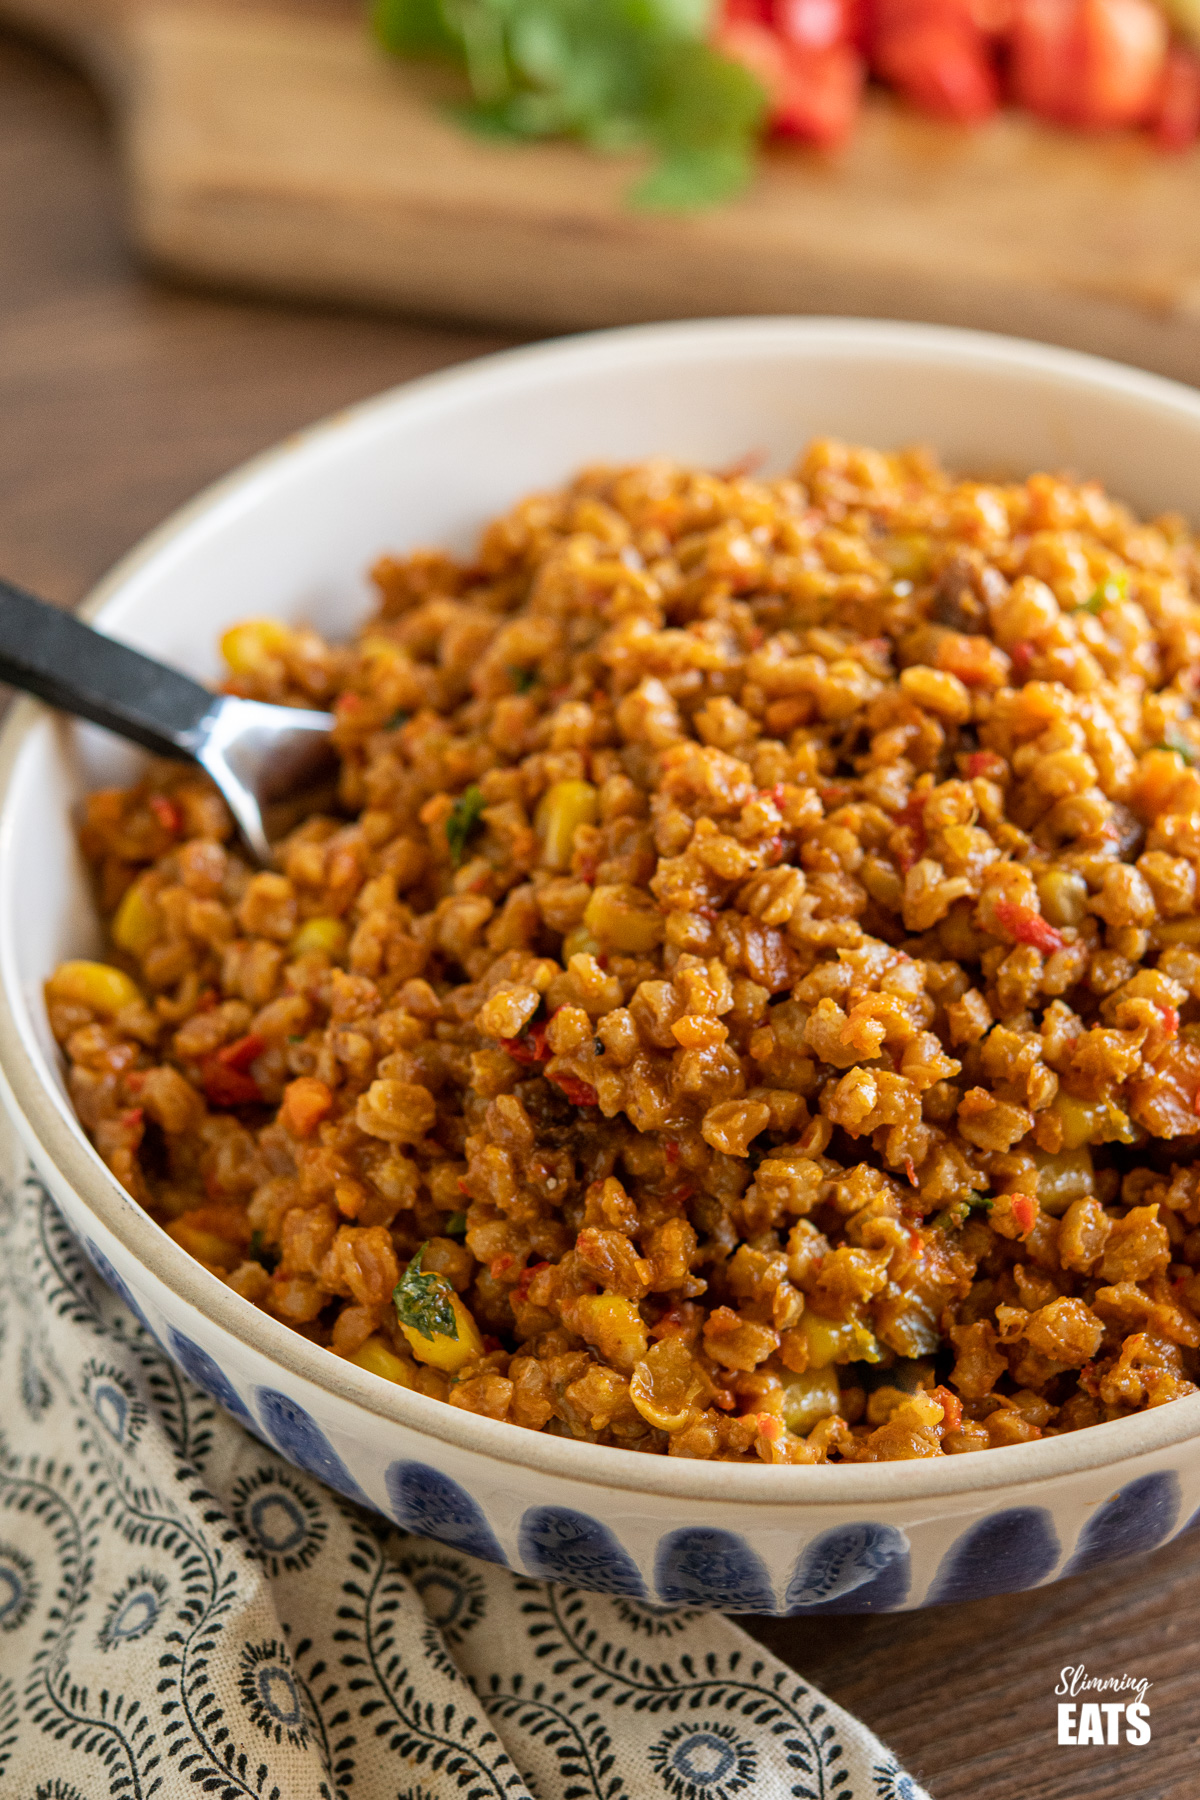 Spicy Farro Risotto in blue and white bowl